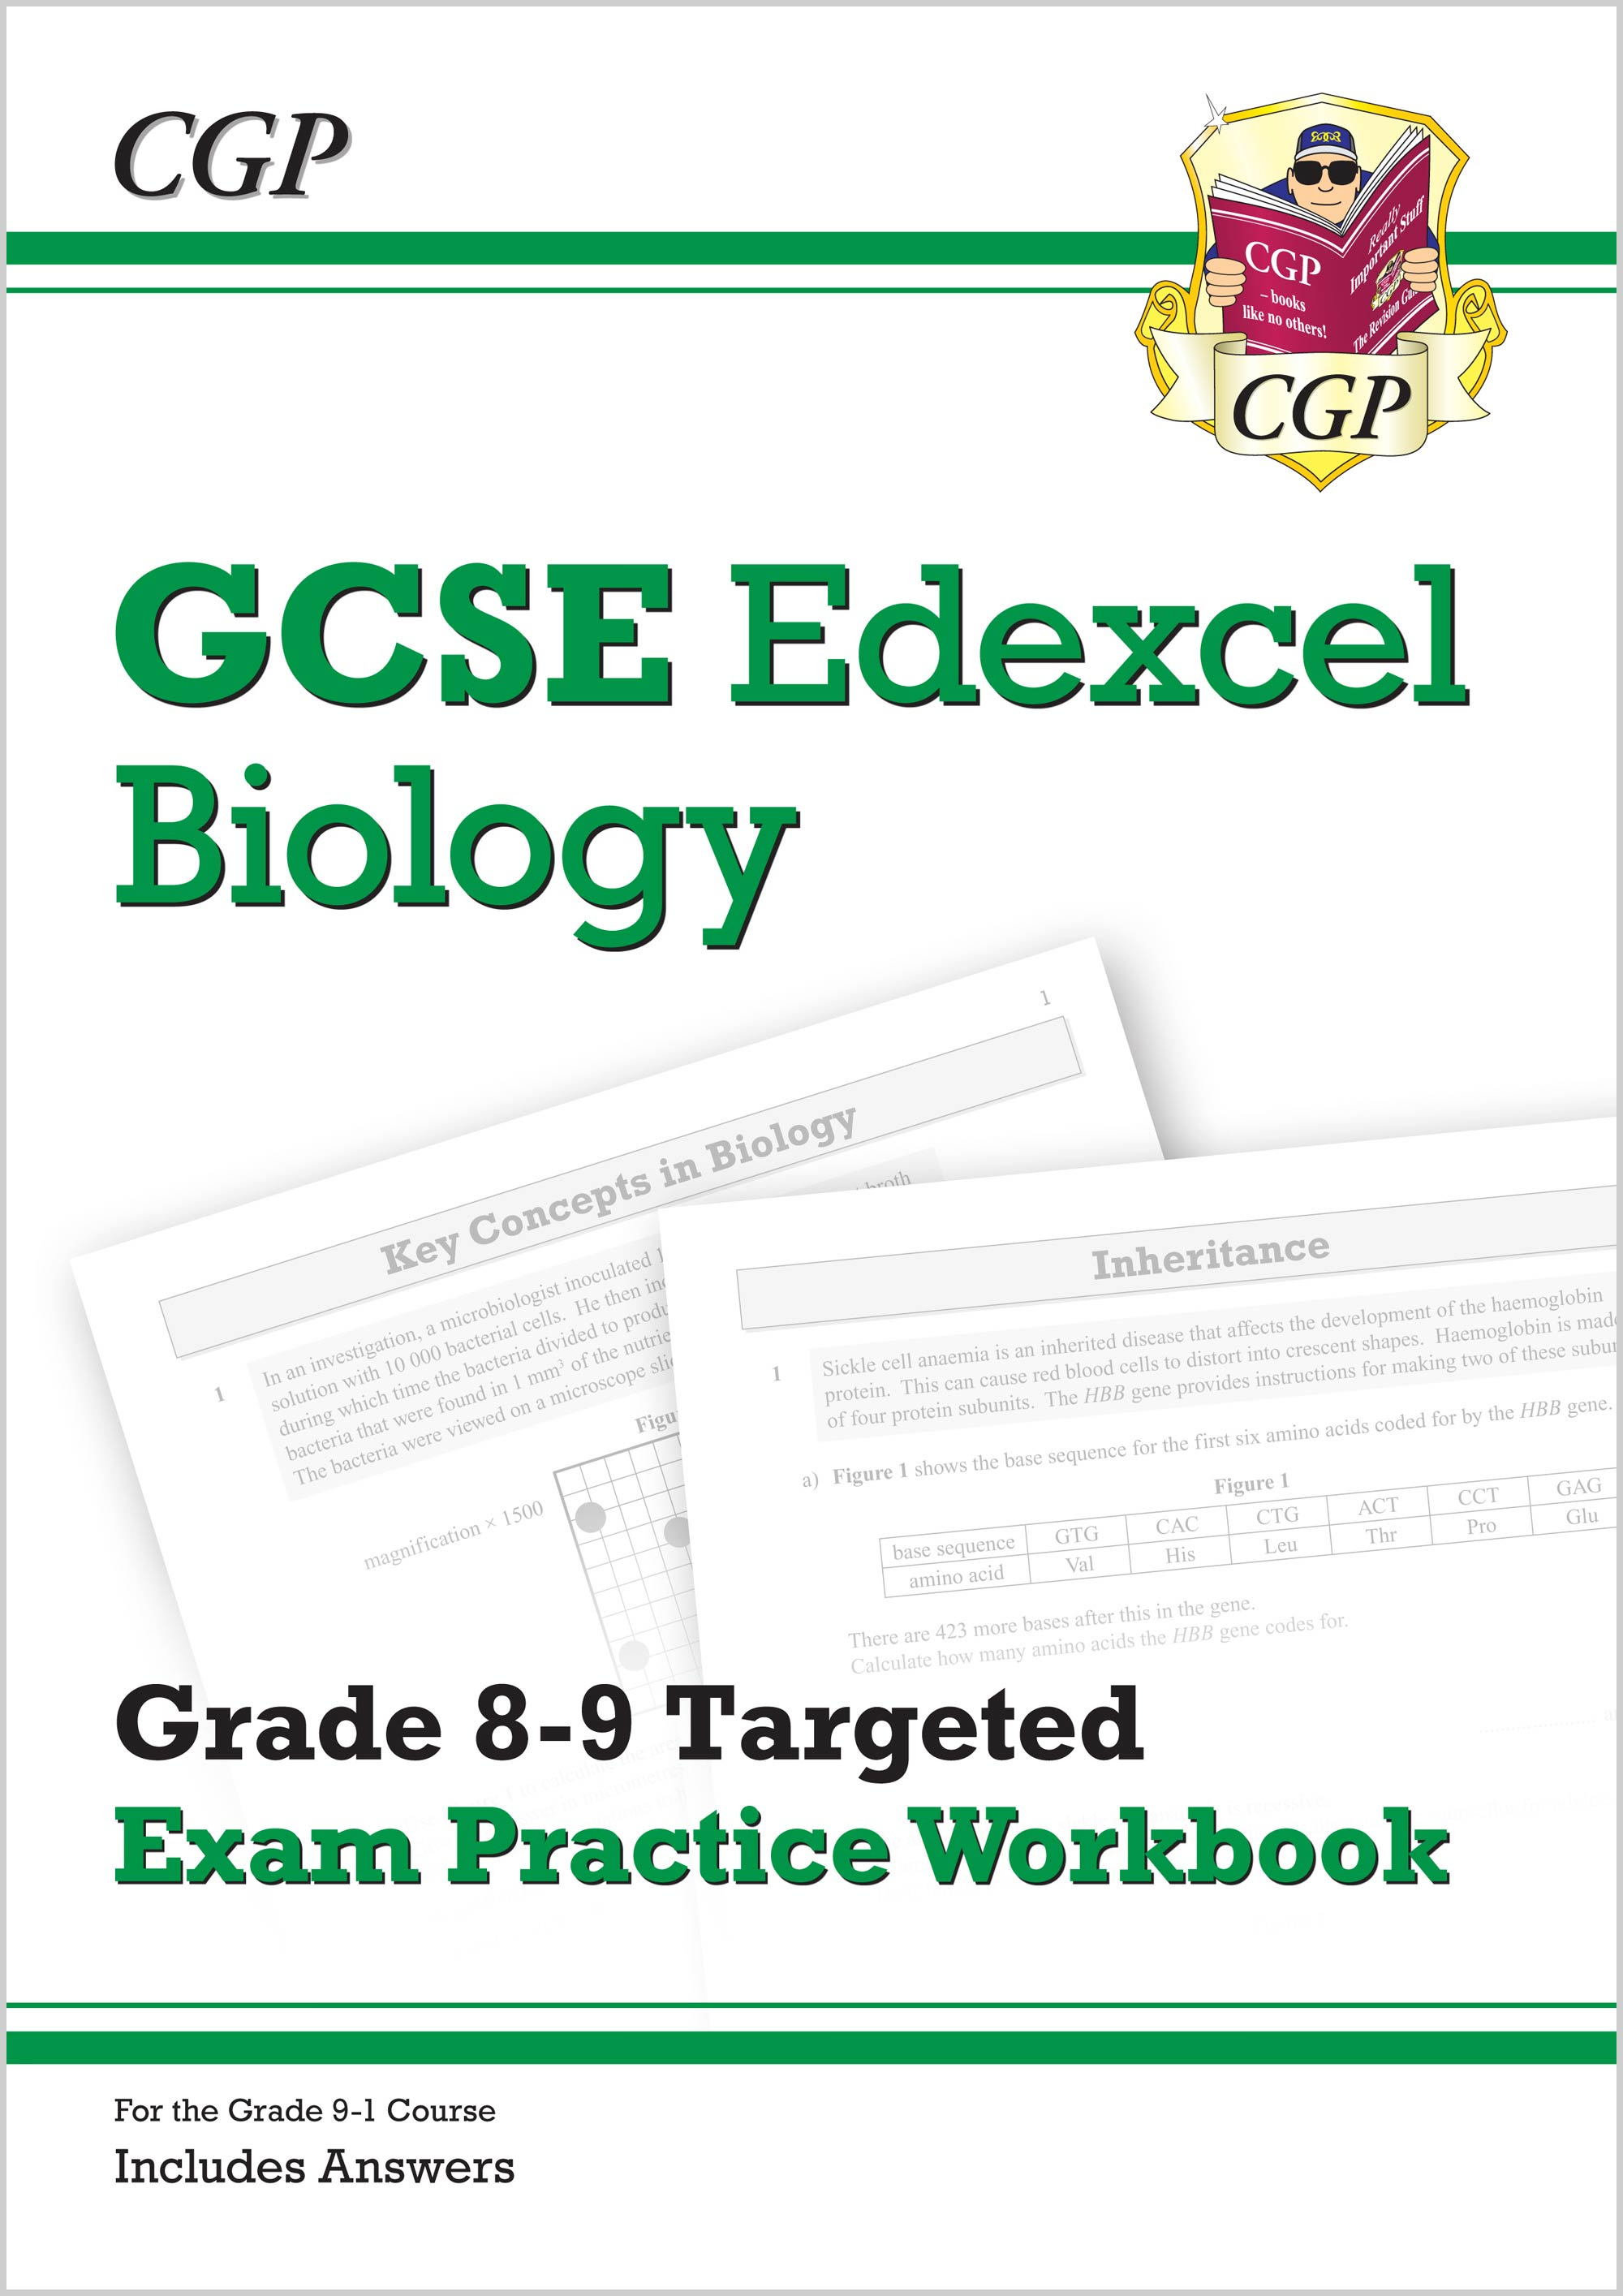 BE9Q41 - New GCSE Biology Edexcel Grade 8-9 Targeted Exam Practice Workbook (includes Answers)